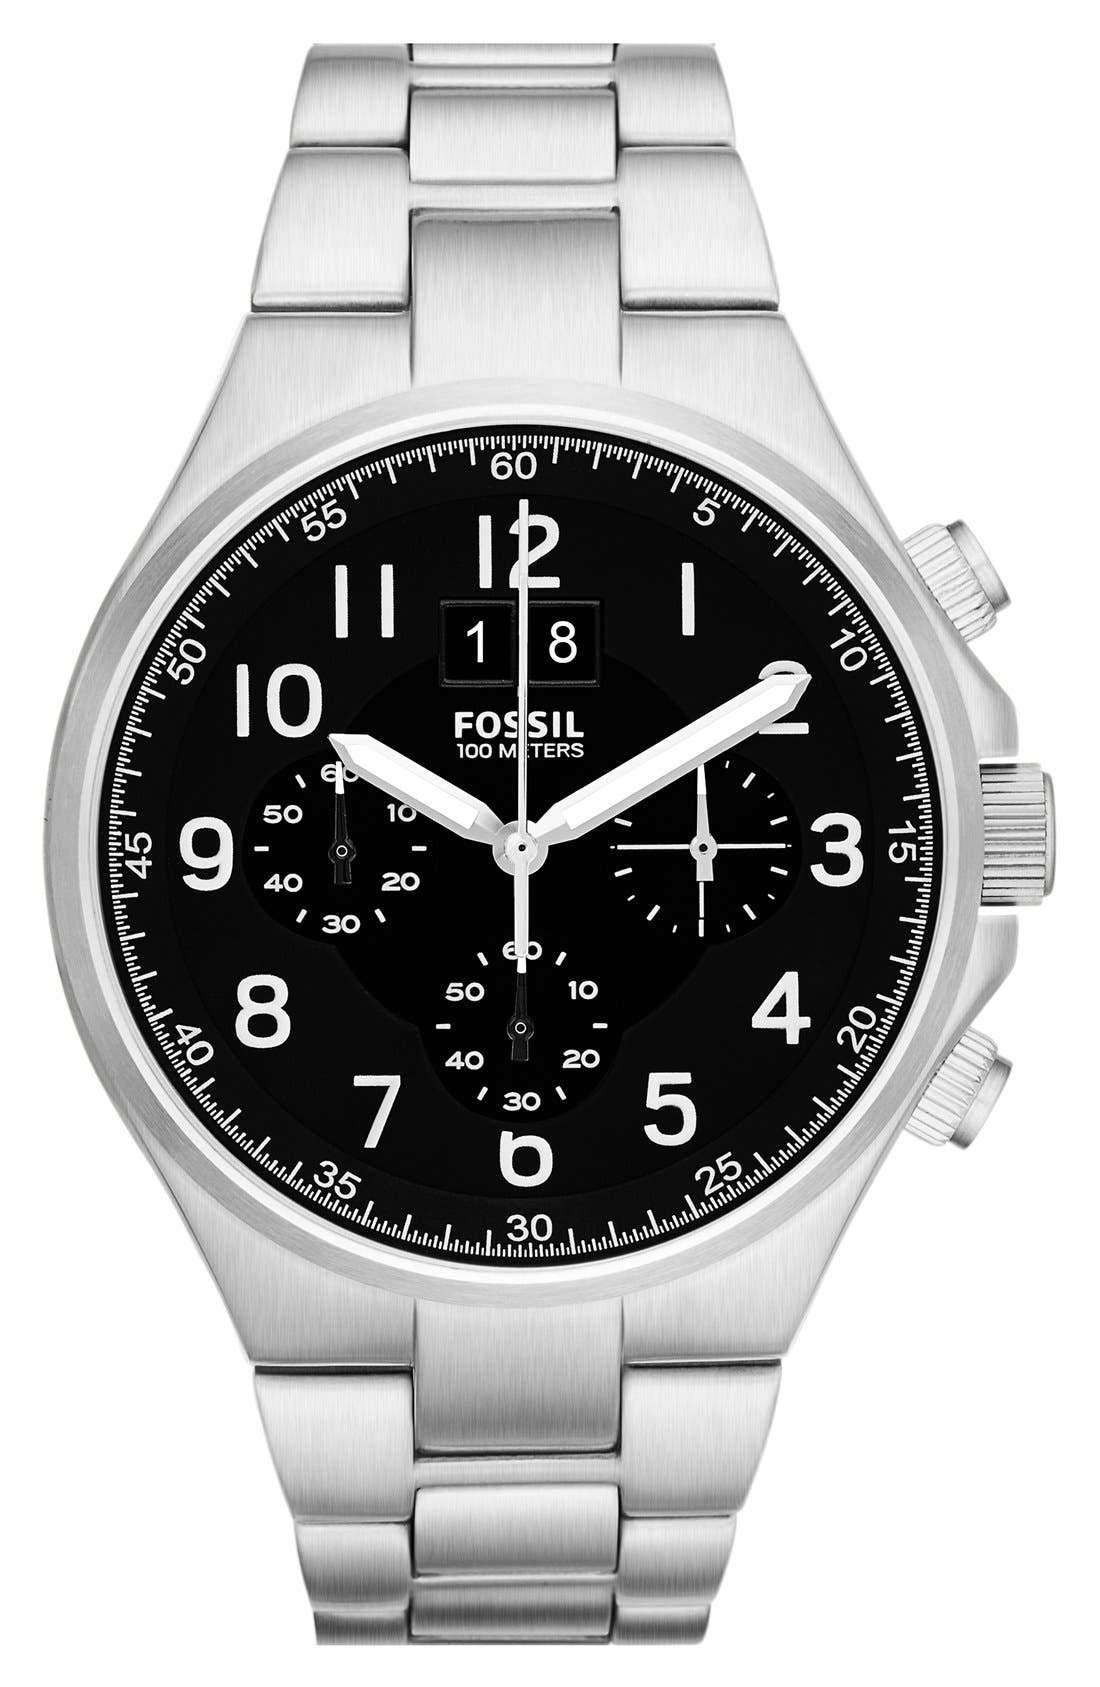 Alternate Image 1 Selected - Fossil 'Qualifier' Chronograph Bracelet Watch, 46mm